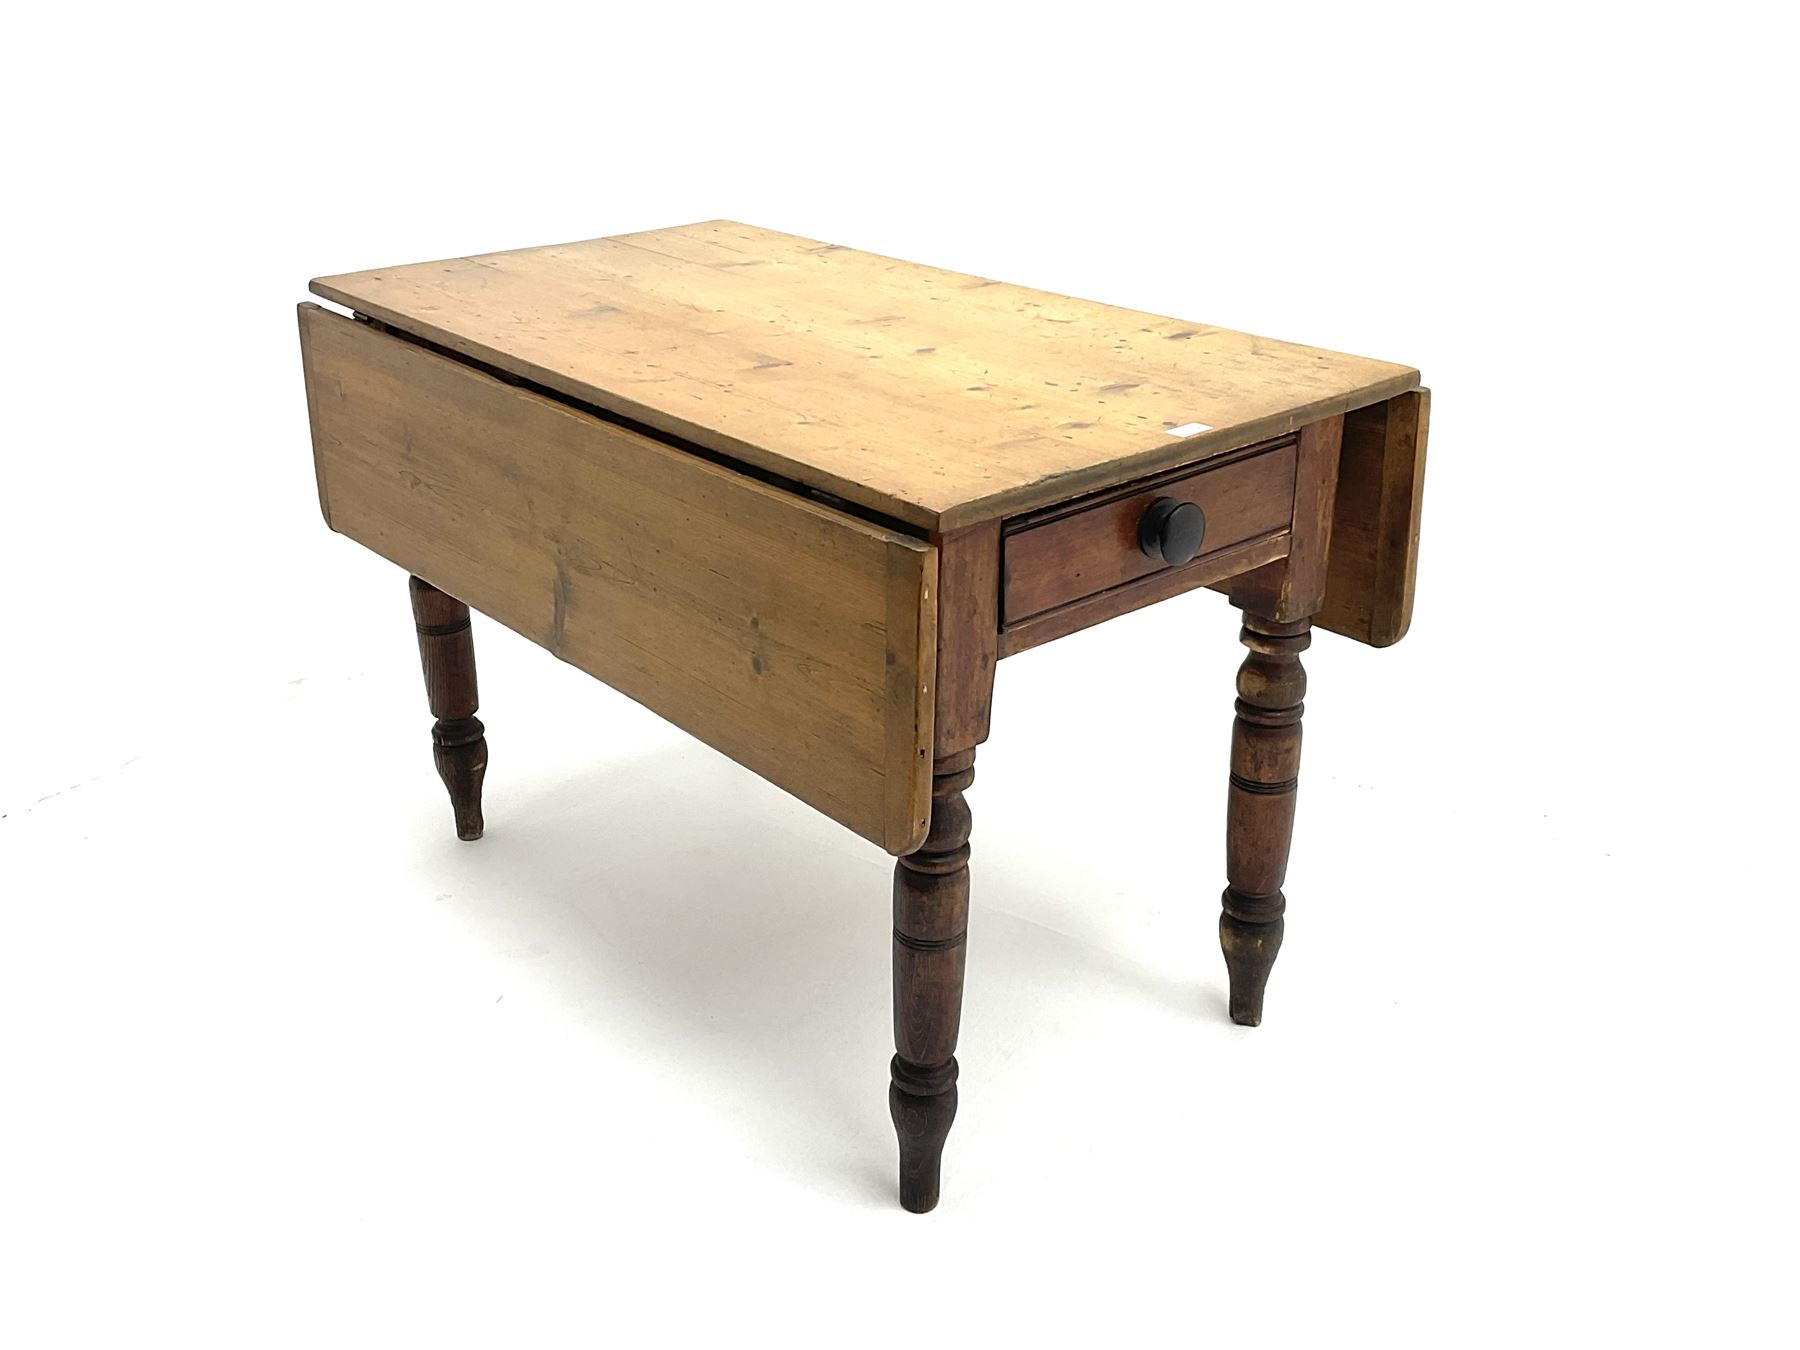 Victorian stained and polished pine drop leaf kitchen table